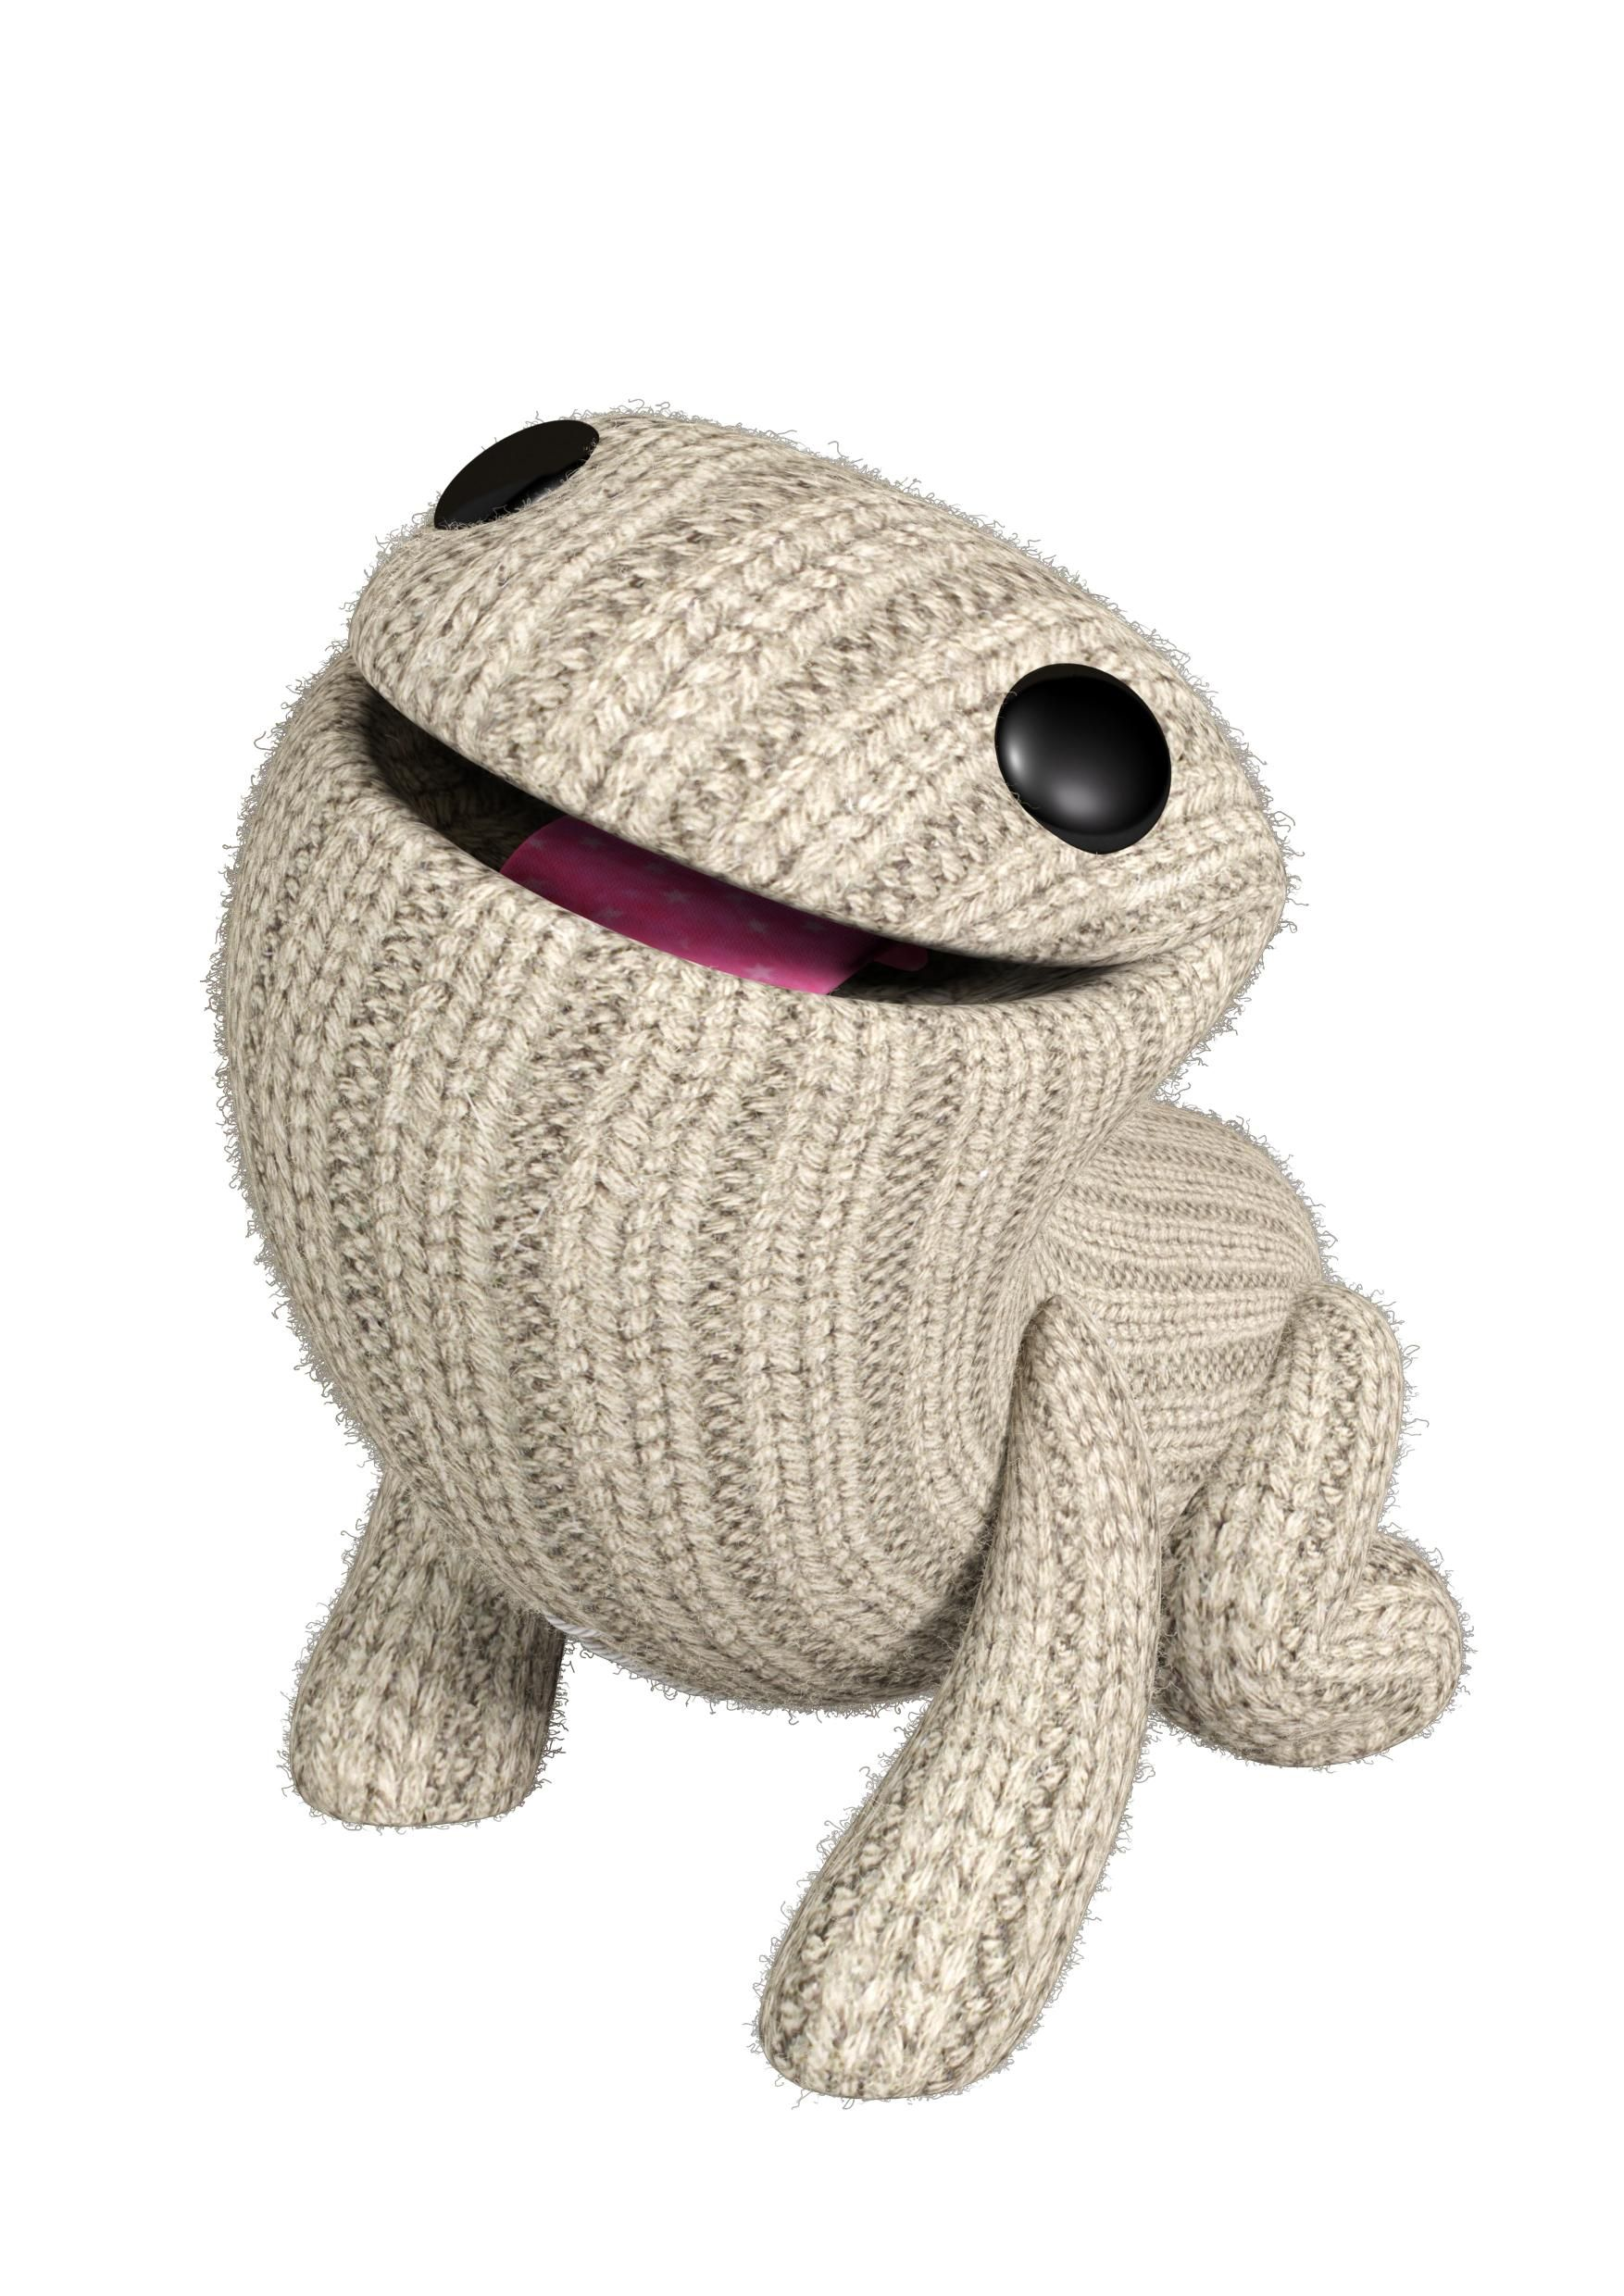 Aww! Look at adorable Oddsock in LBP3!!! My Oddsock is dressed like ...